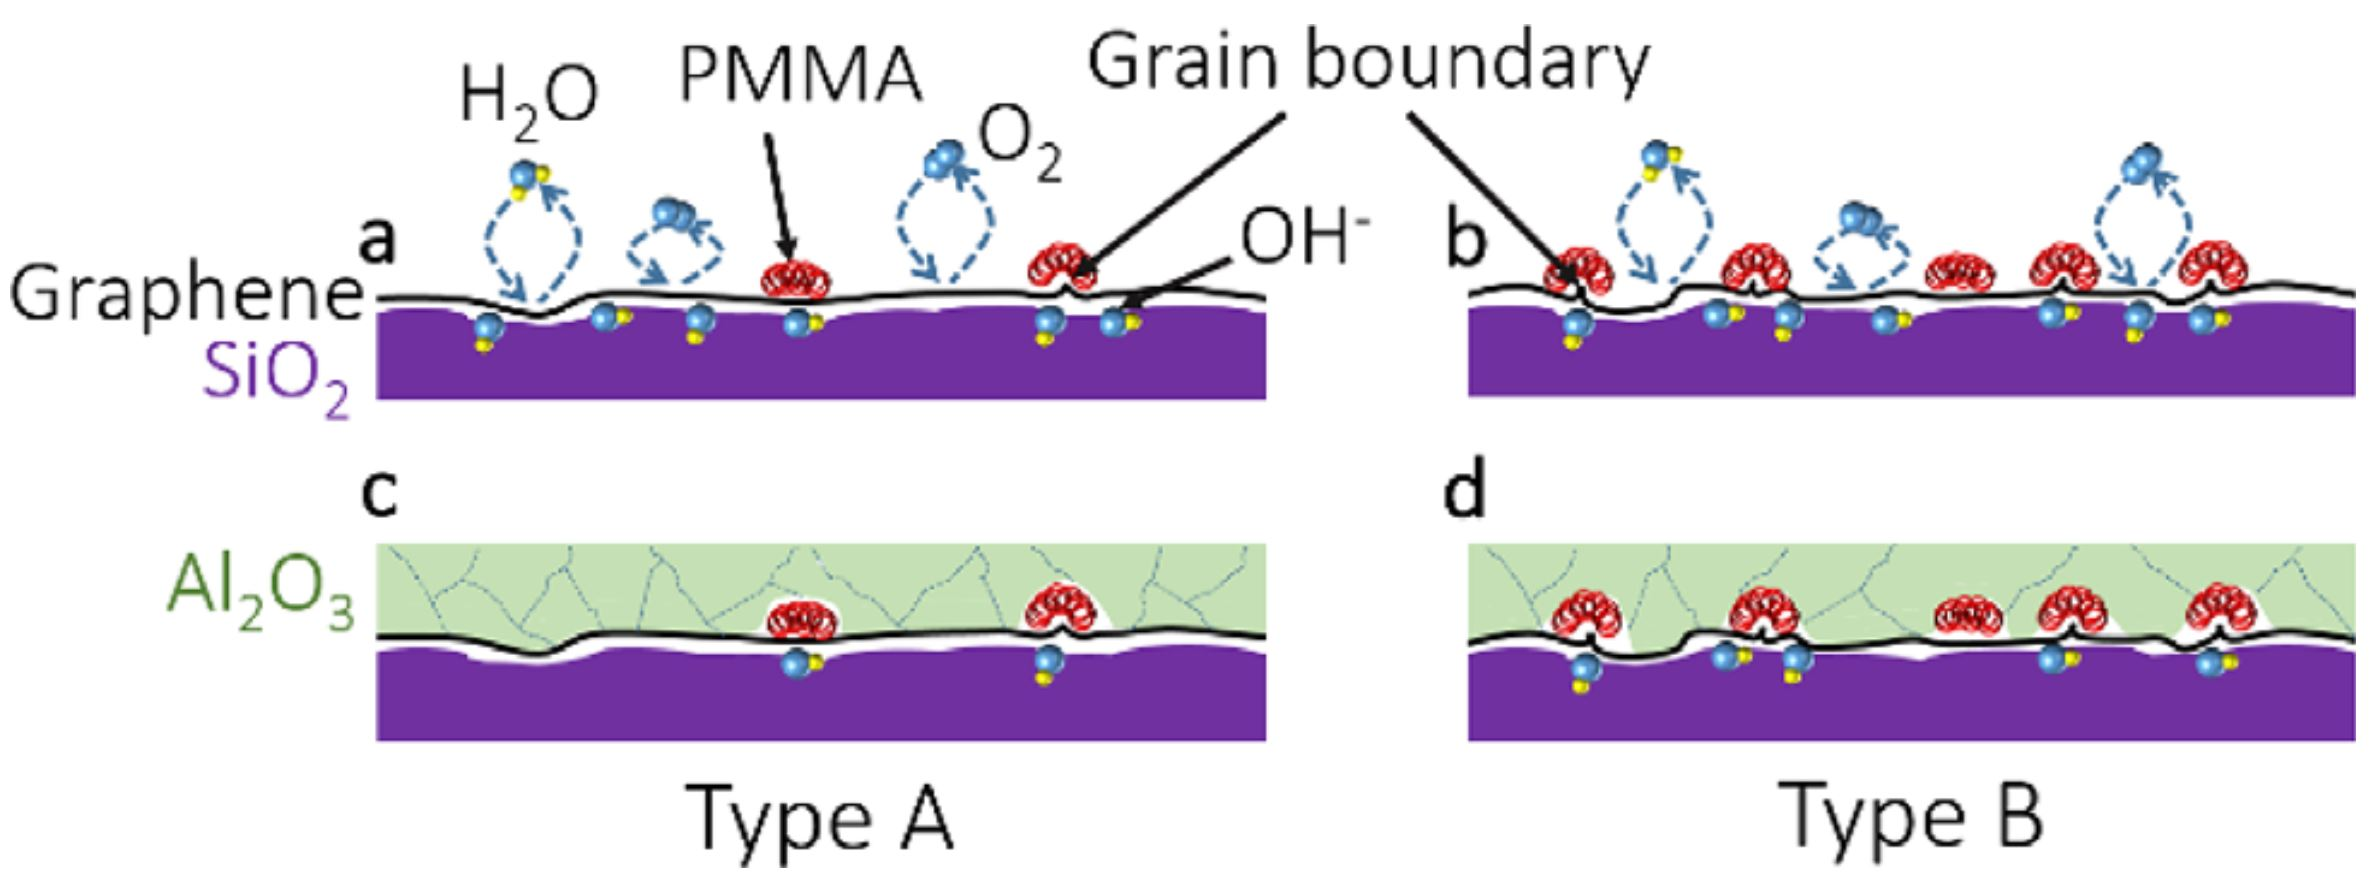 Electronic properties of CVD graphene: The role of grain boundaries, atmospheric doping, and encapsulation by ALD